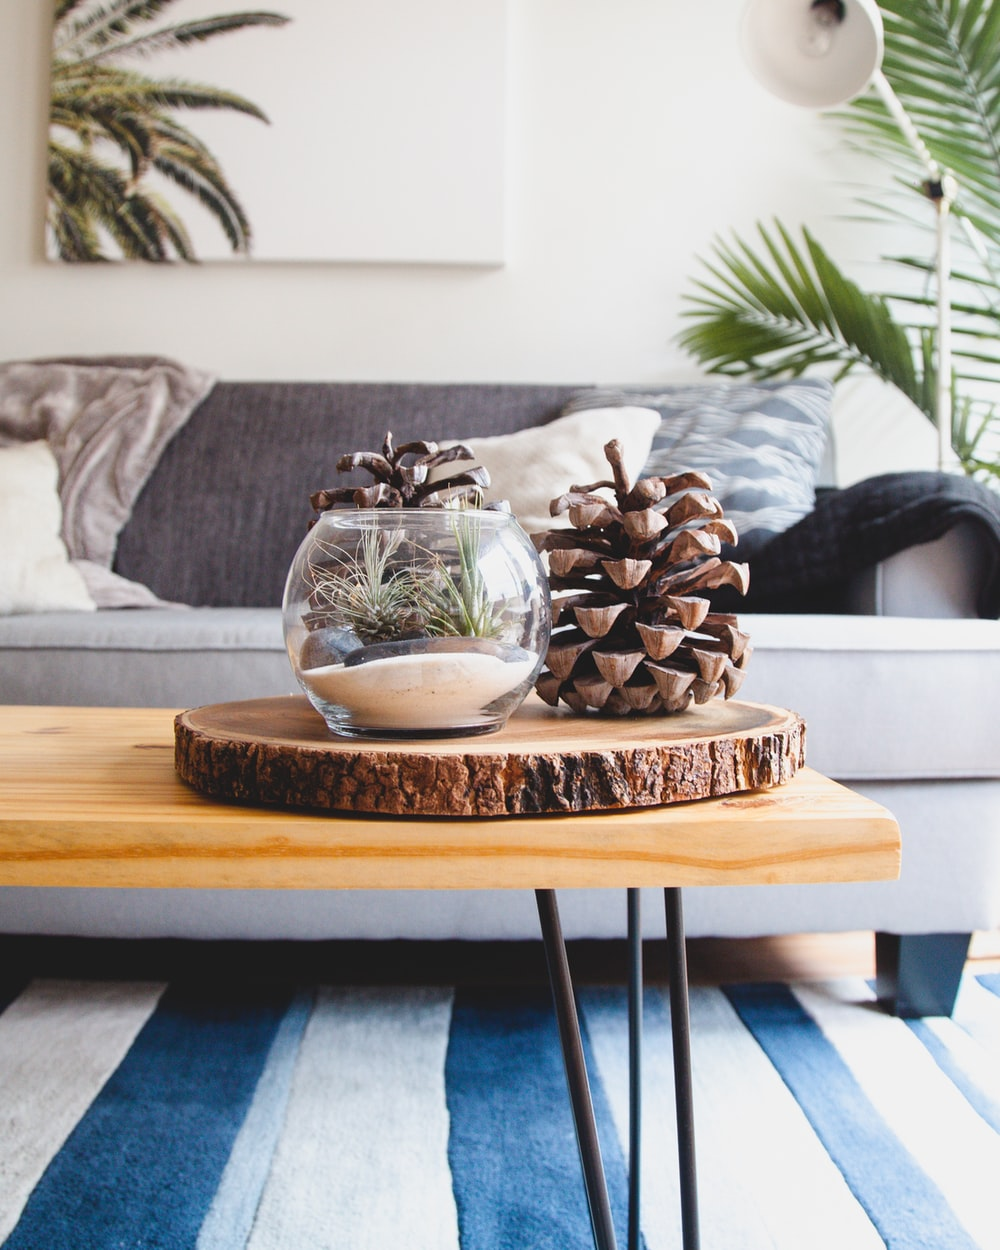 clear fishbowl beside pine cones on brown wooden table